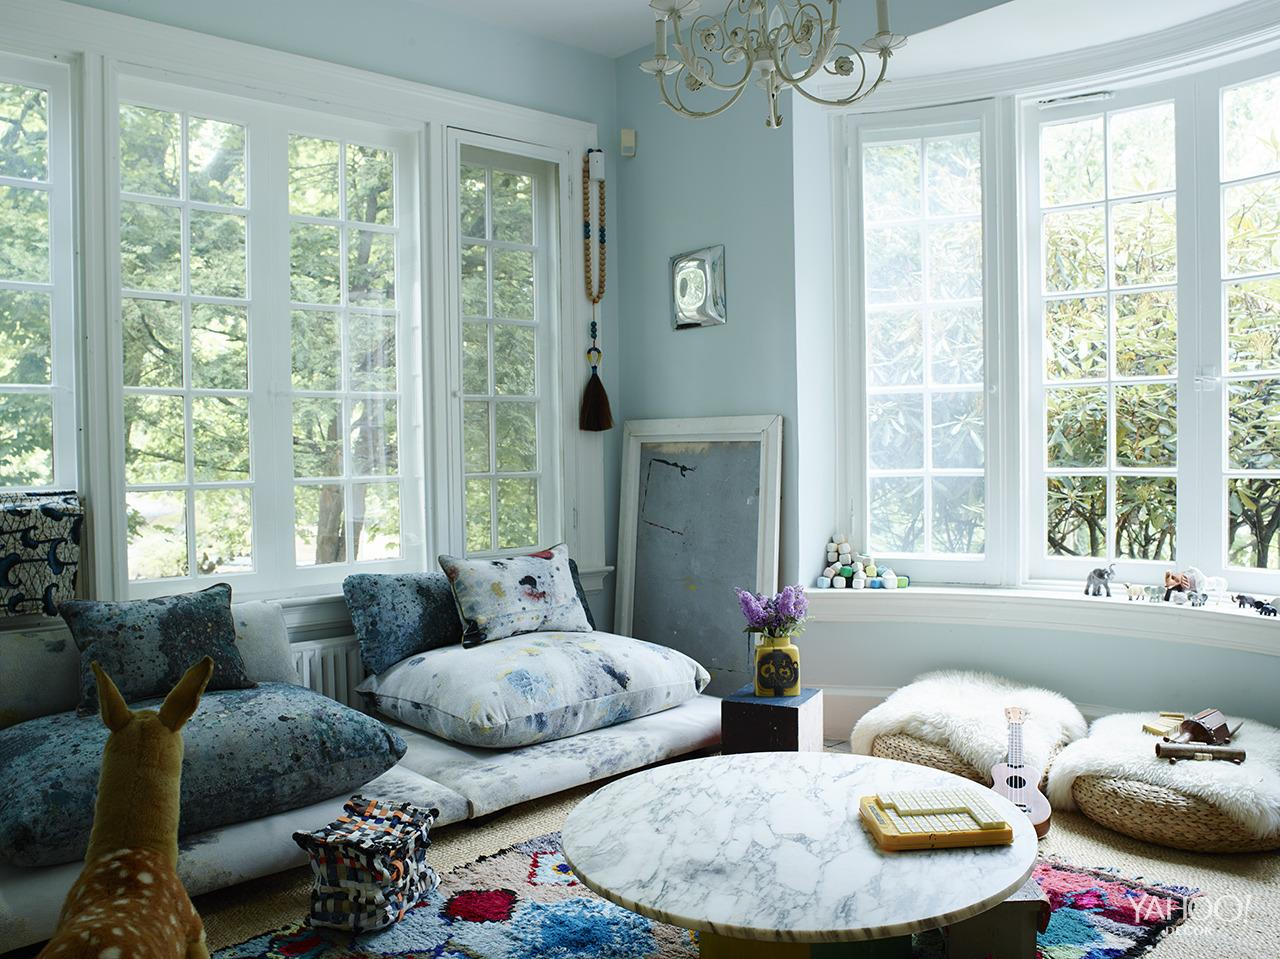 """<p>""""People love hanging out in this room. We call it the kid room, but it is beloved by adults and kids alike. I designed the Chicklet Formation sofa, which is upholstered with """"Dropcloth"""" fabric designed by <a href=""""http://www.martynthompsonstudio.com/"""">Martyn Thompson</a>. The thing I love most about this room is that everything is low to the floor, '70s style. We took a formal space and reimagined it as something friendlier. We rarely let food in here, but if something spills on the couch, who cares? The fabric is made to look like splattered paint anyway.""""<br /></p>"""